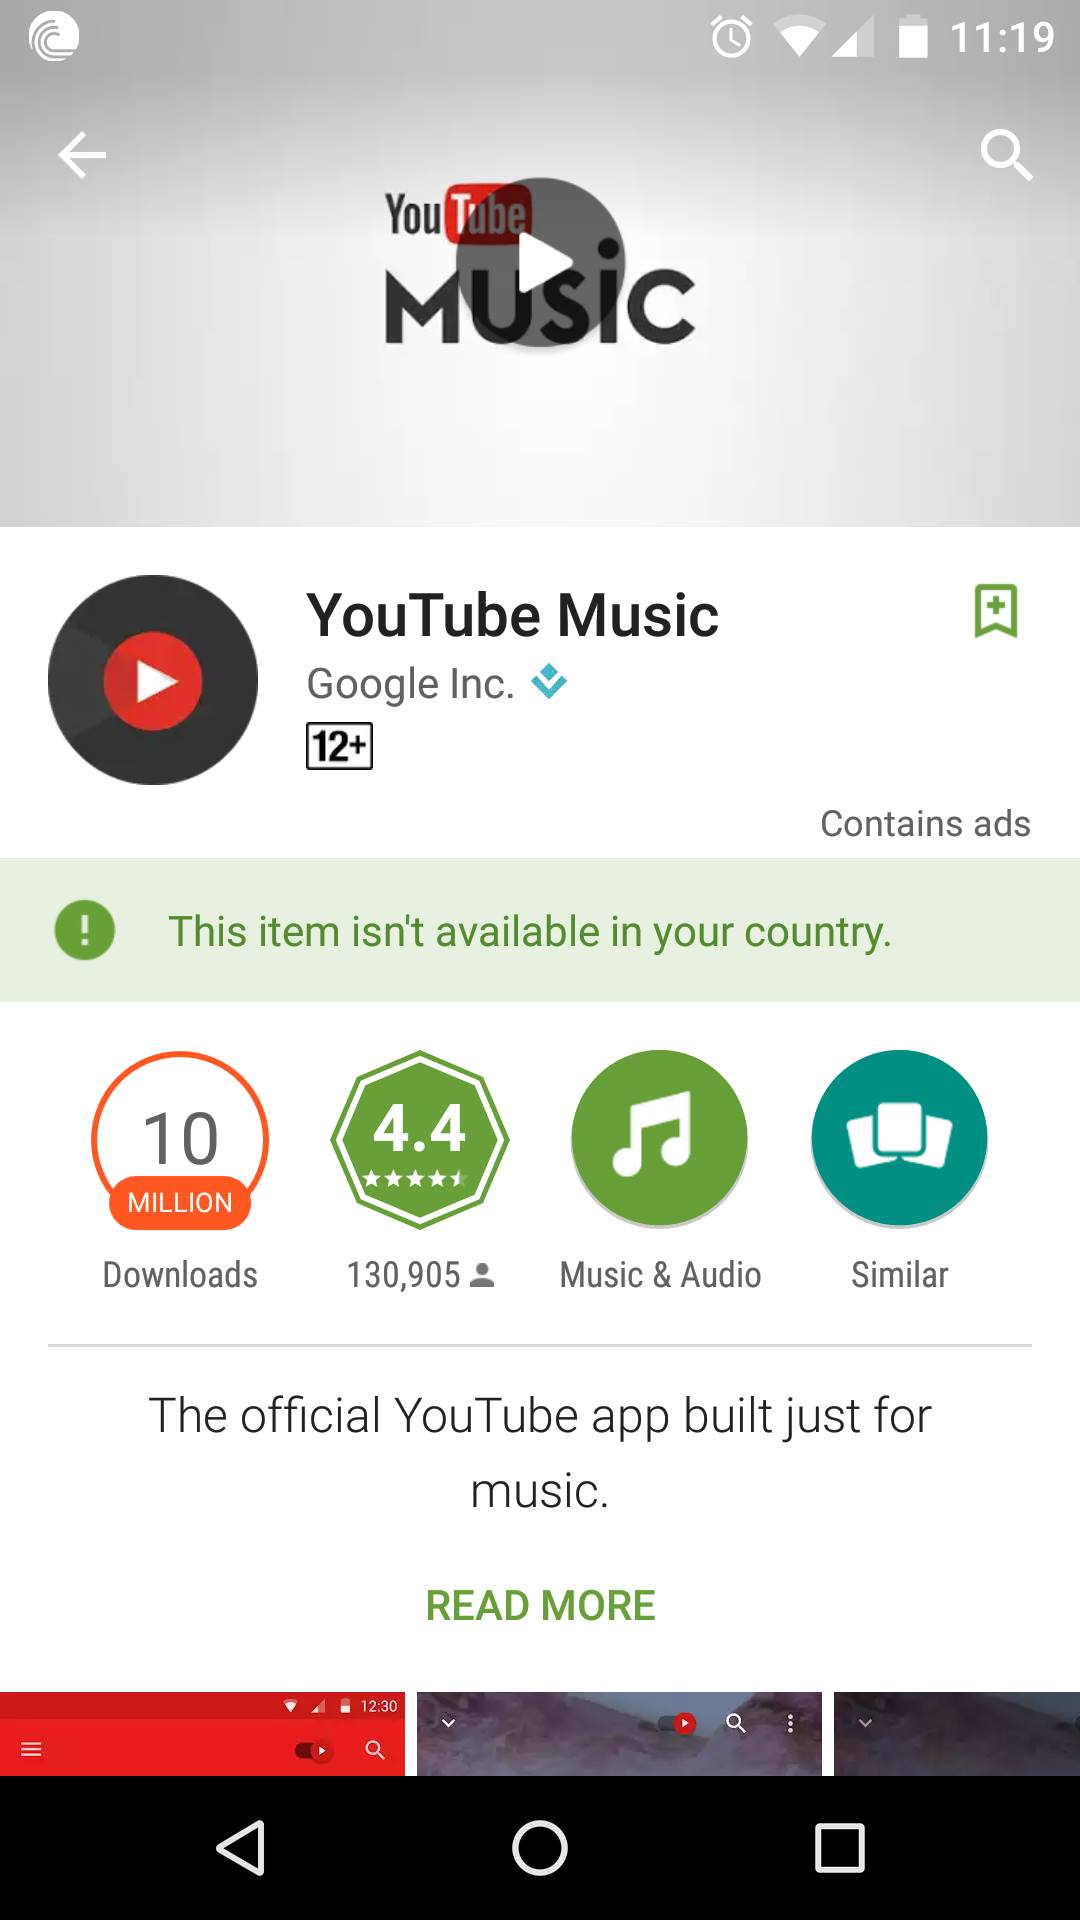 How to Unblock YouTube Music App